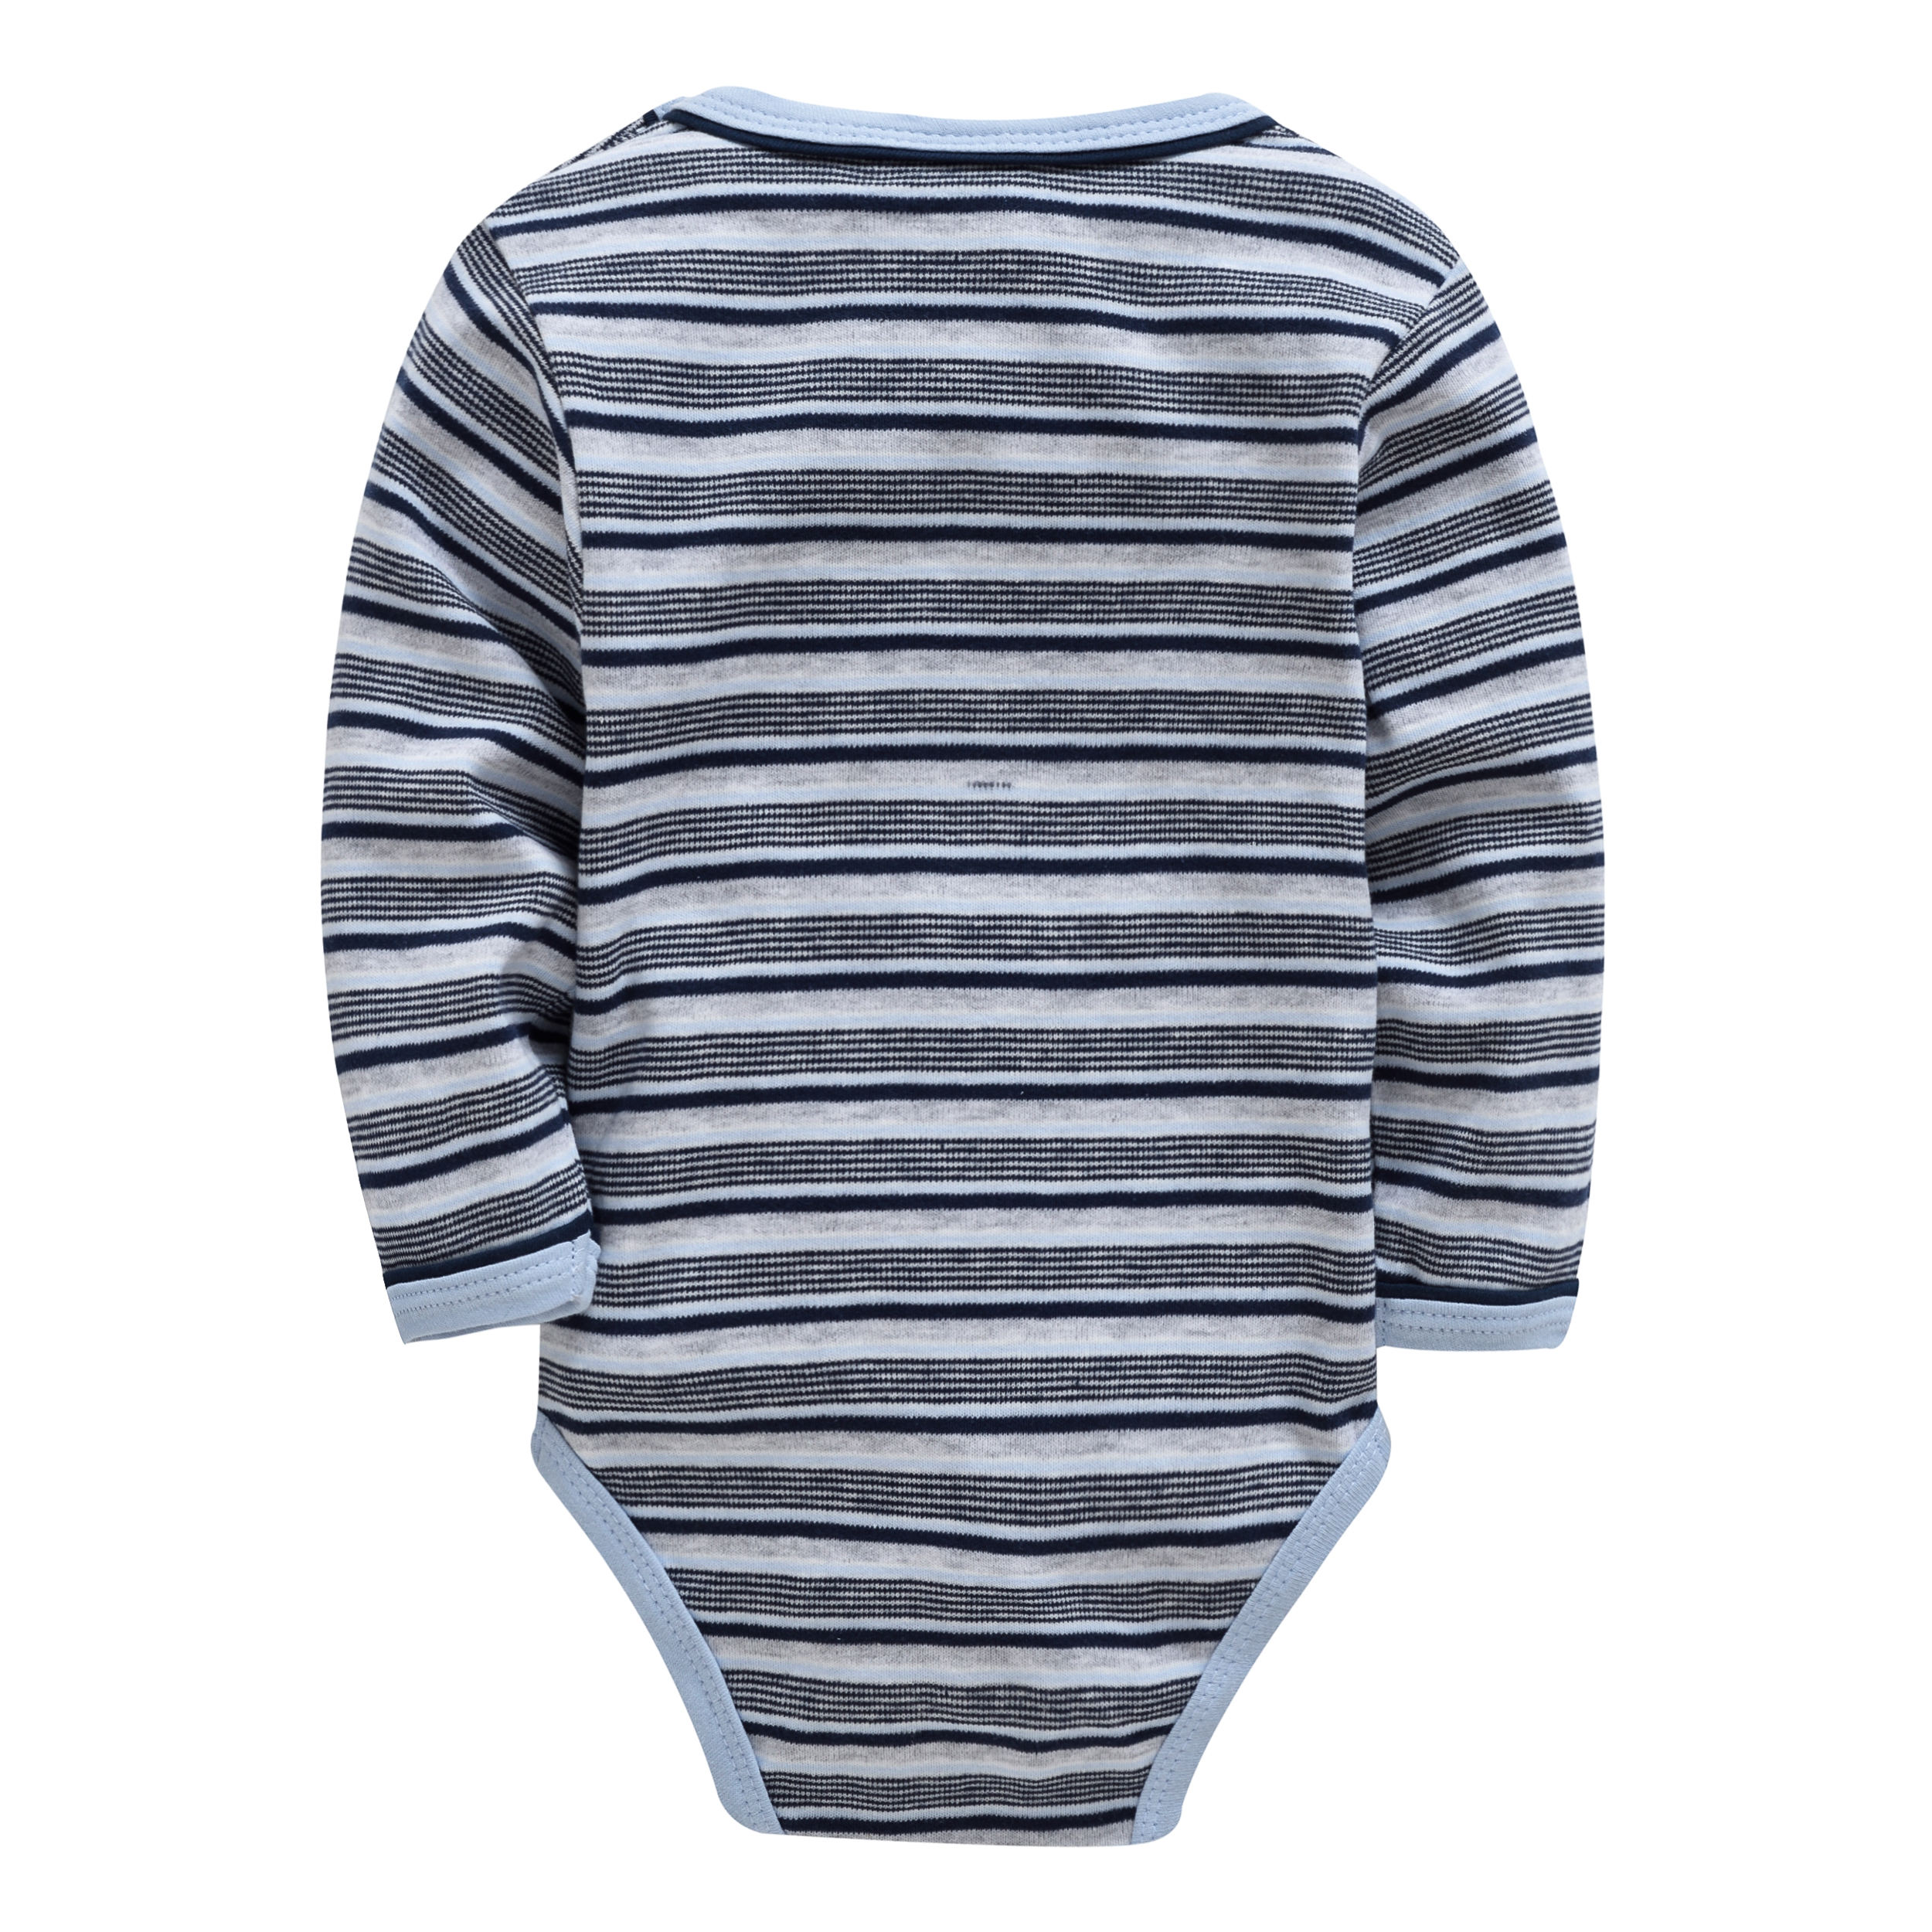 Large Quantity in Stock Ready to Ship and Shipping Cost Negotiable Baby Stripe Rompers